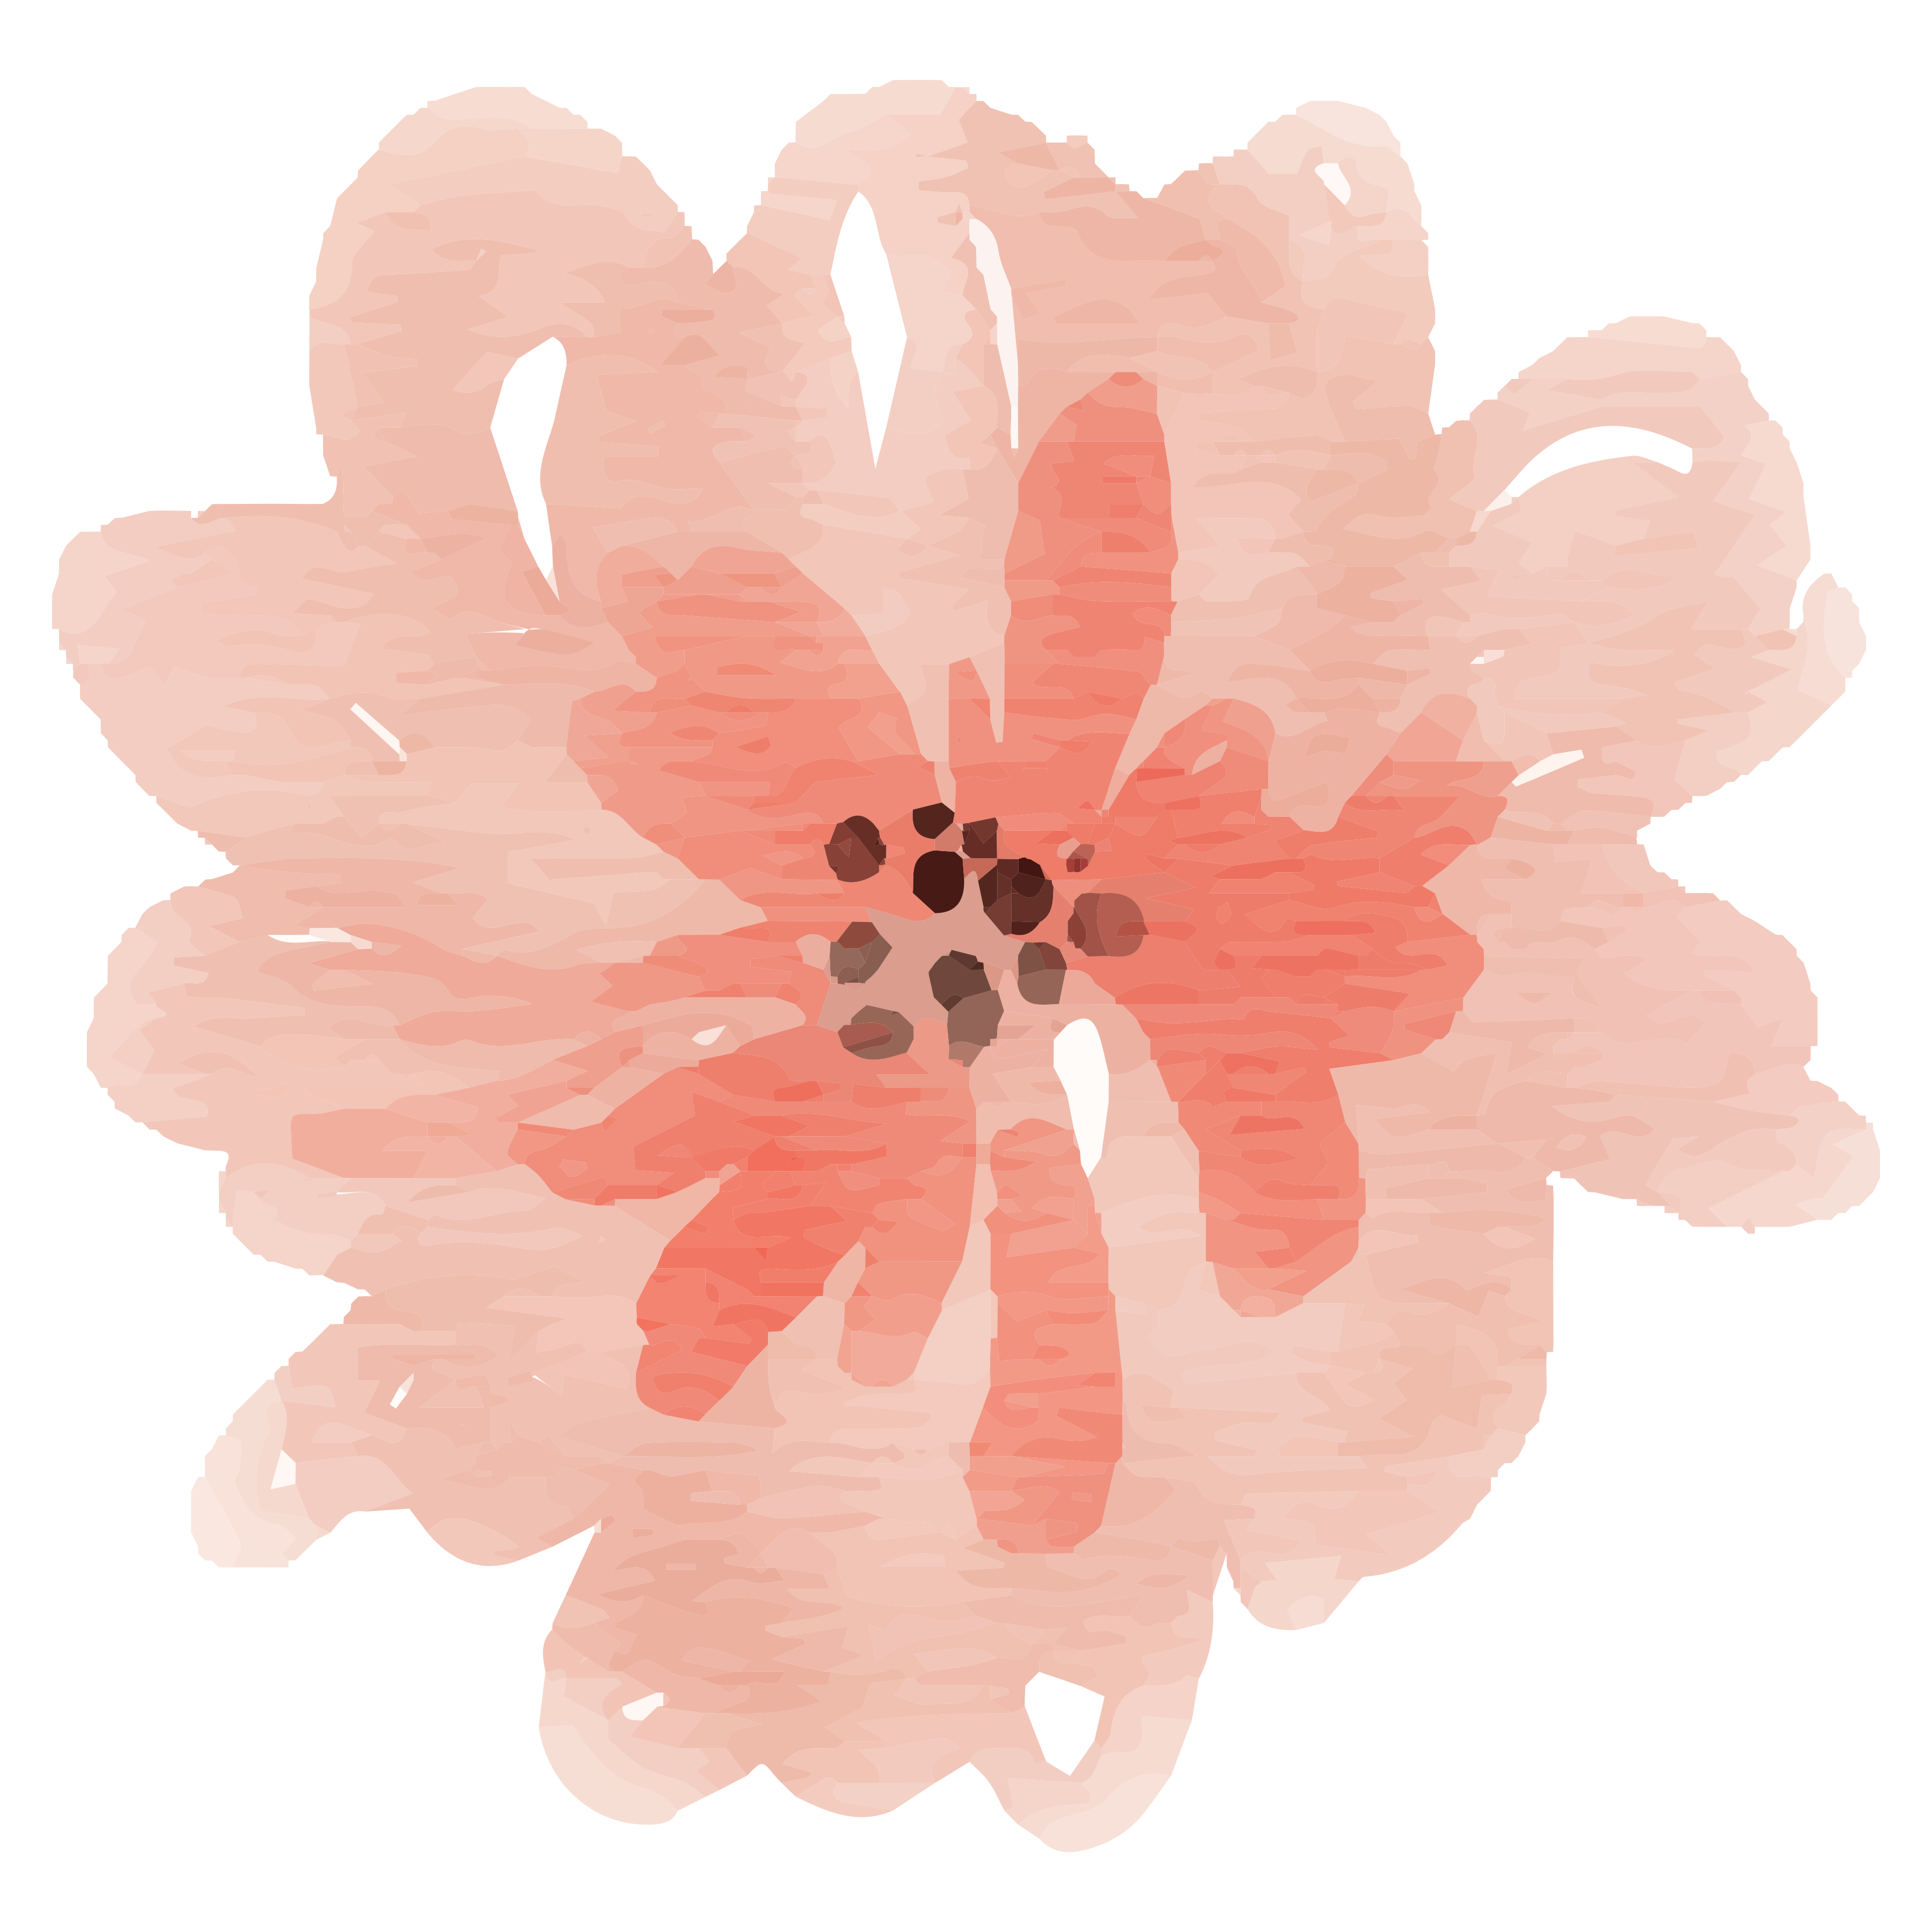 Peach flower png. Free watercolor images delight